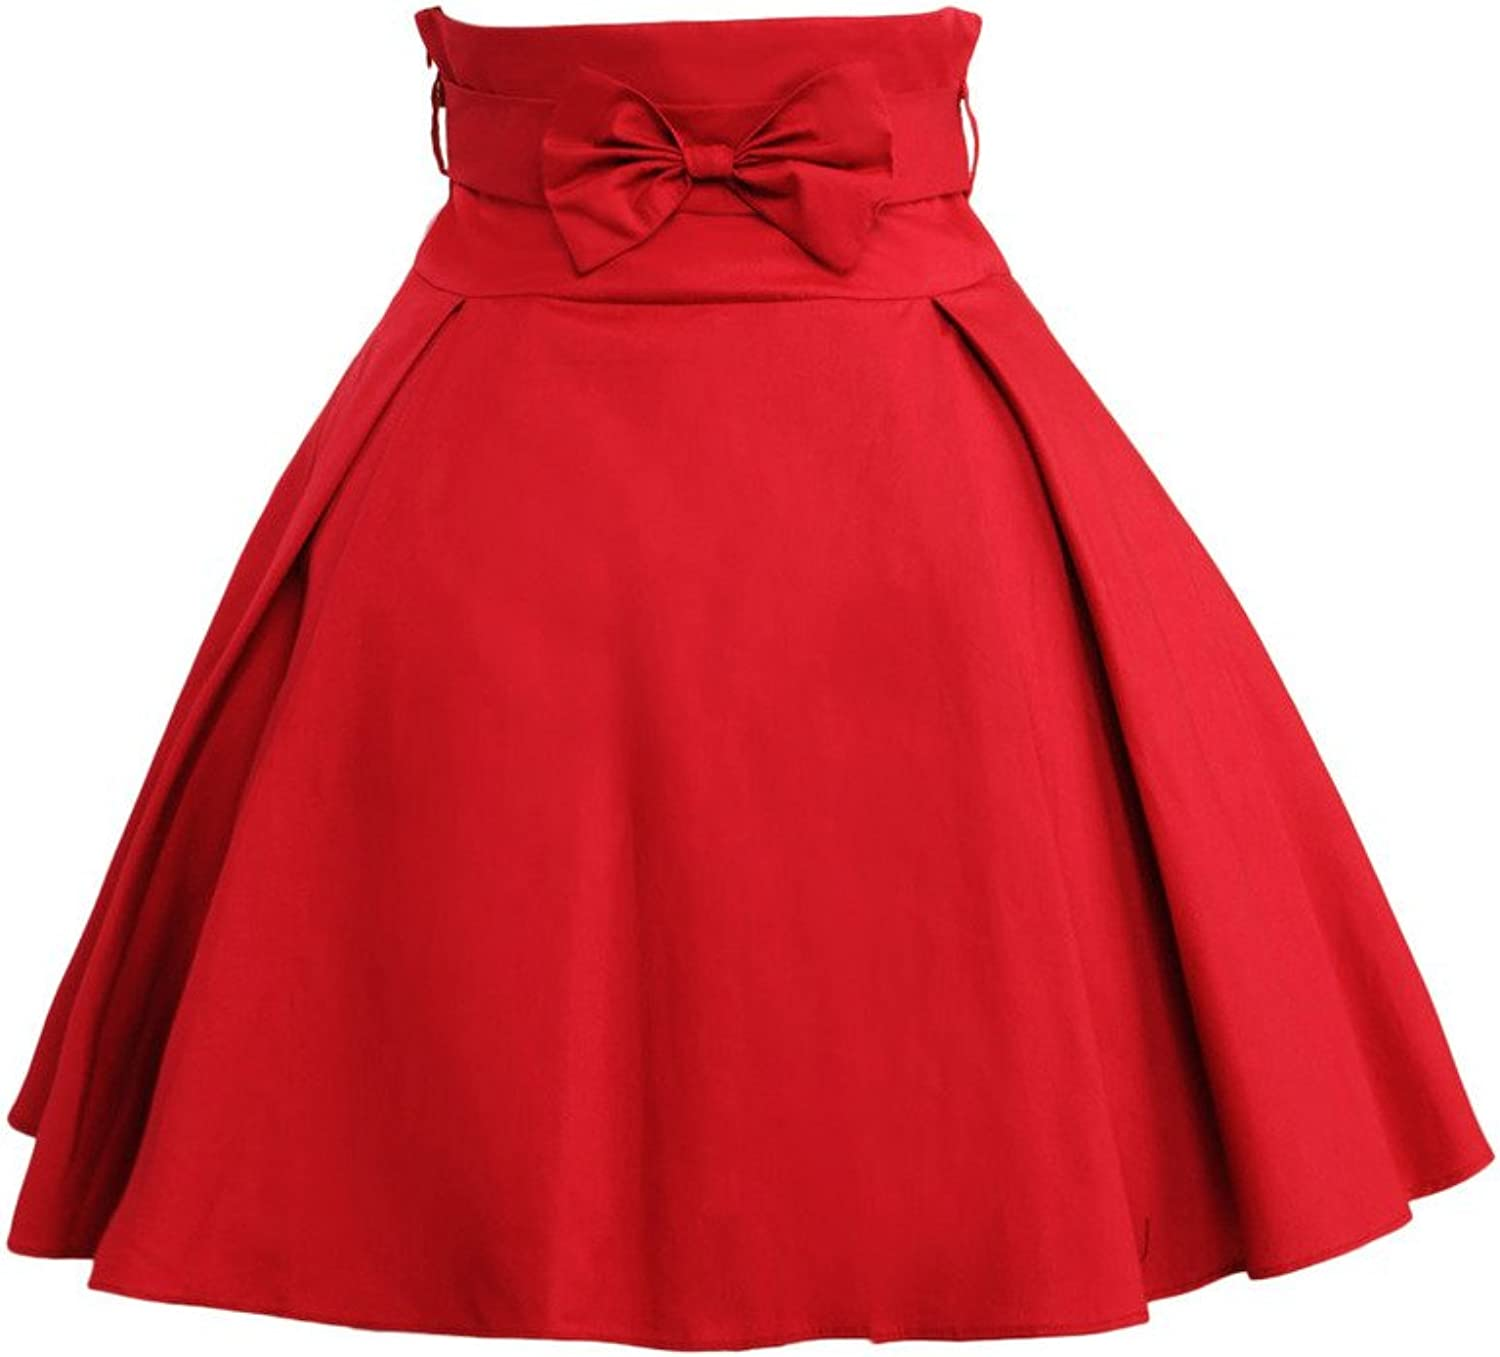 Hugme Simple Dark Red Bow Cotton Lolita Skirt